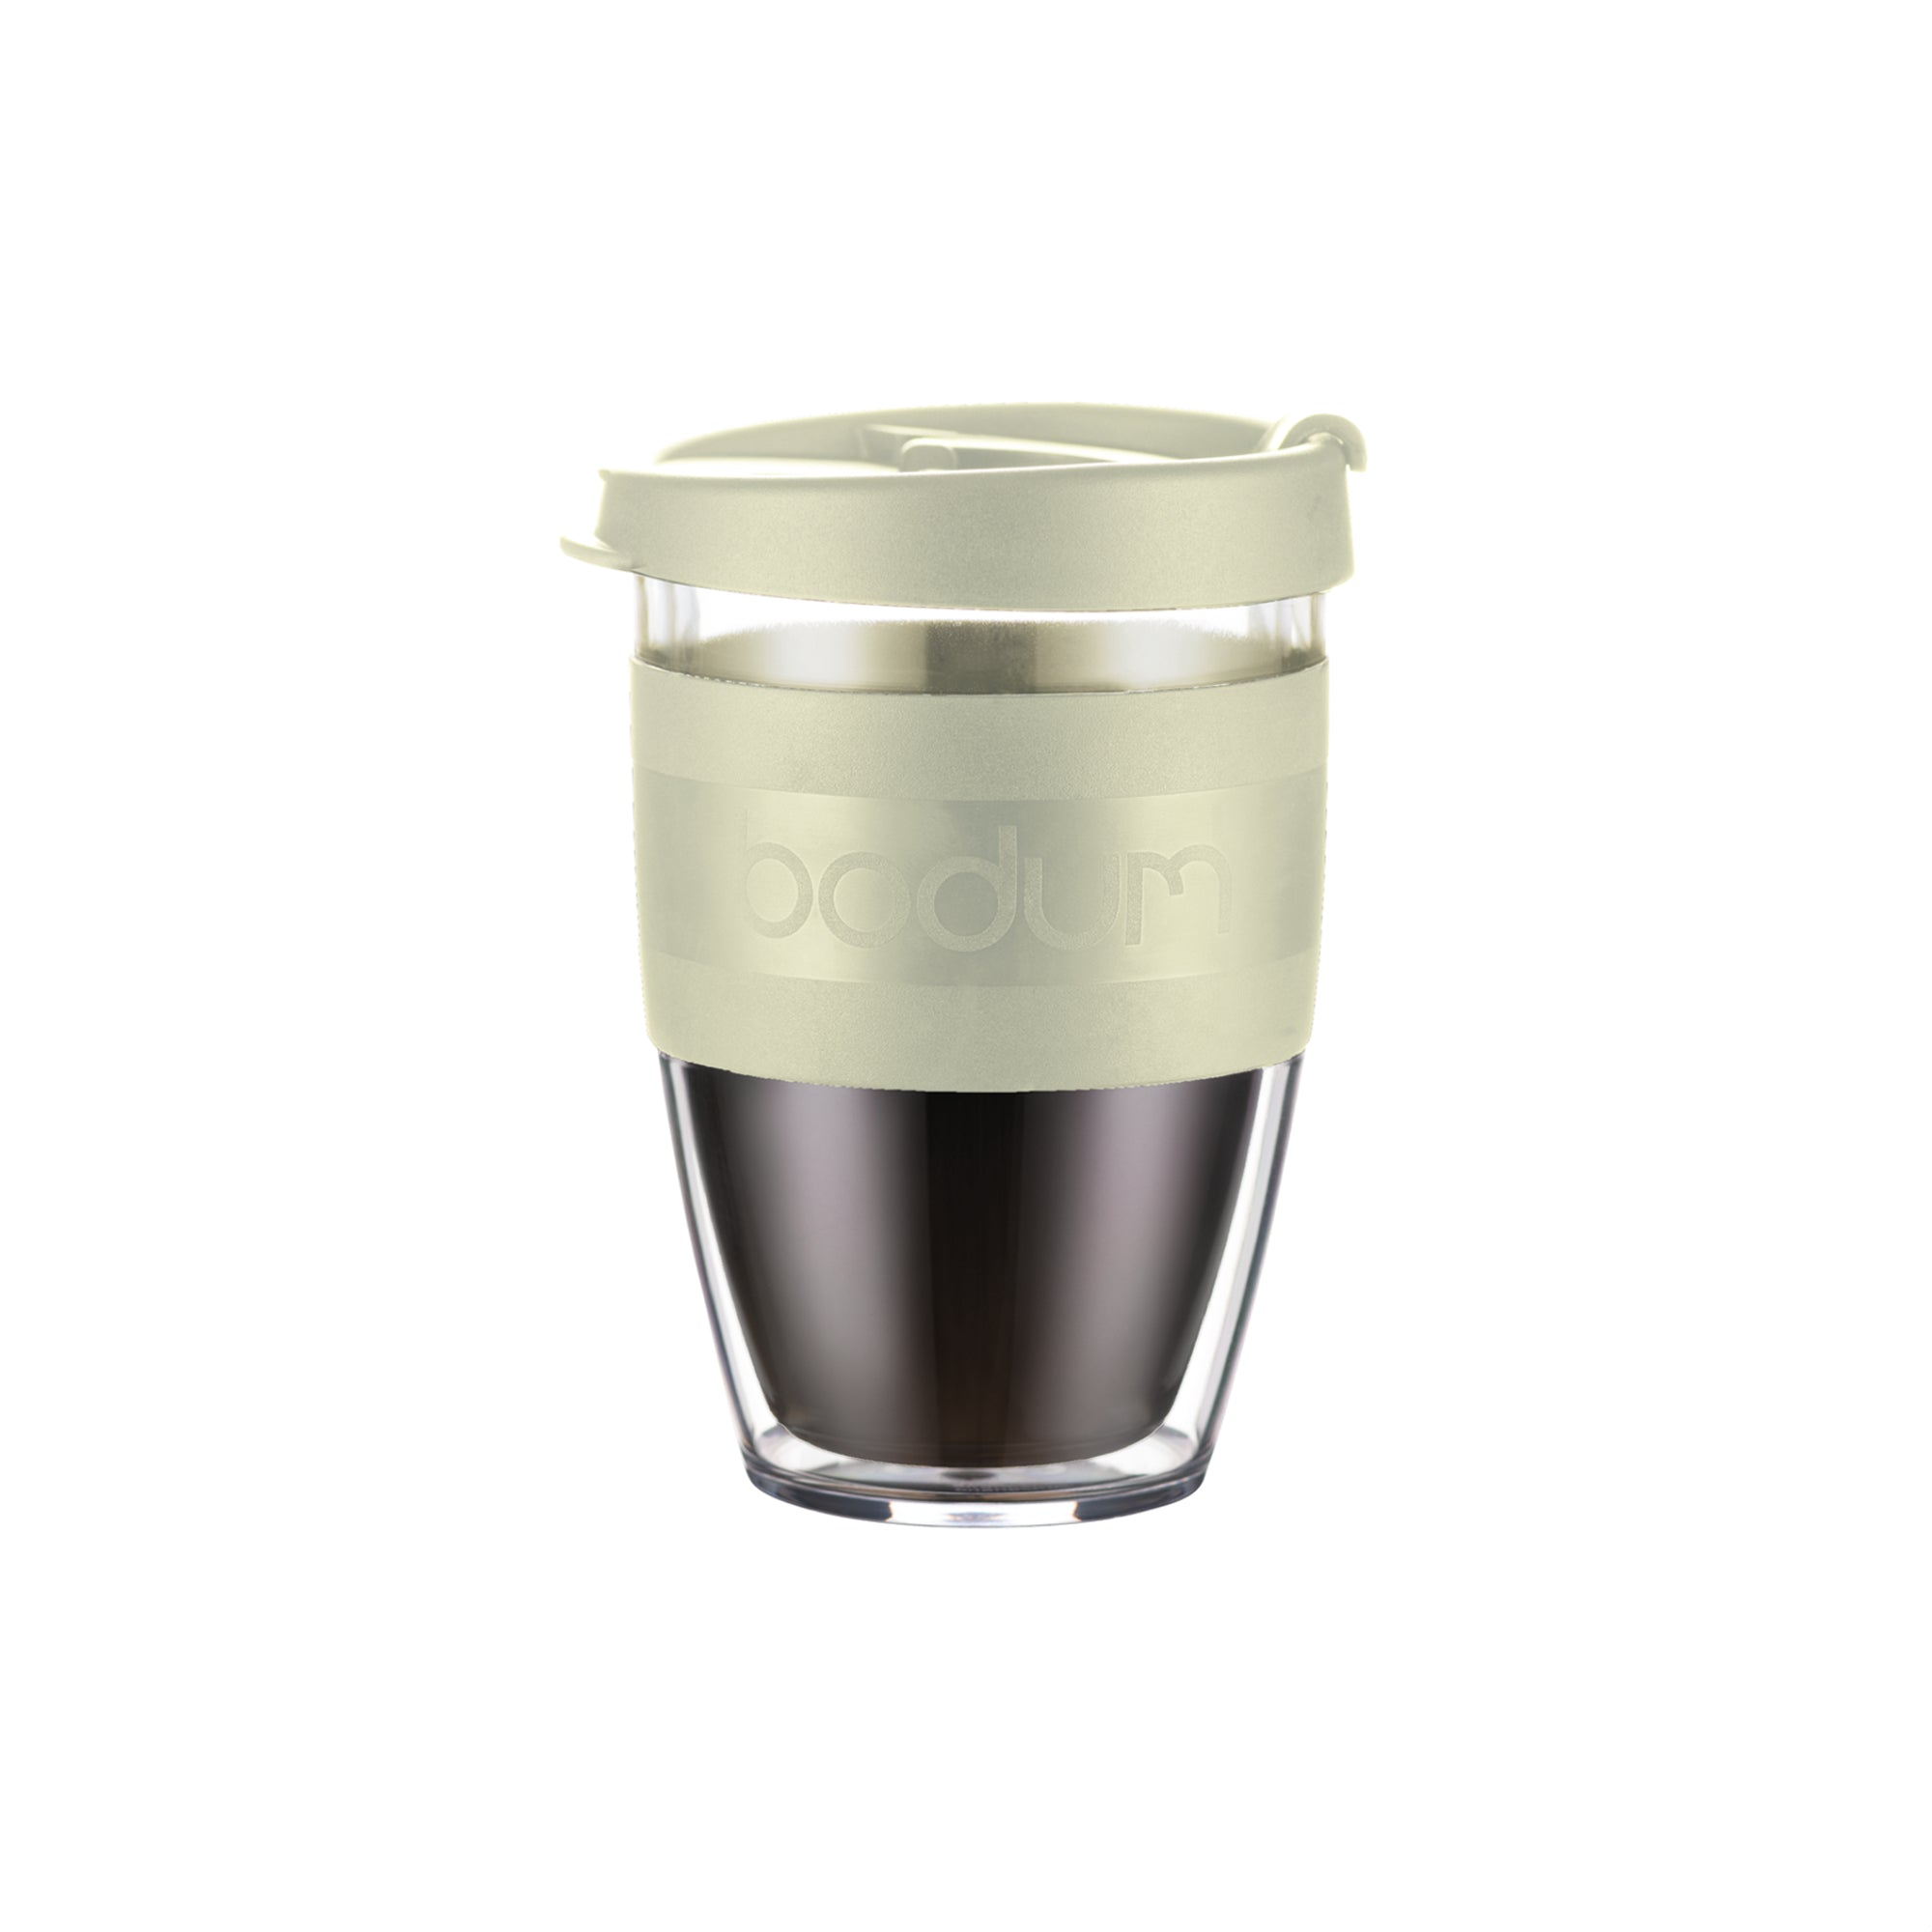 Joycup Travel Mug Double Wall Plastic Body 0.35L/12oz